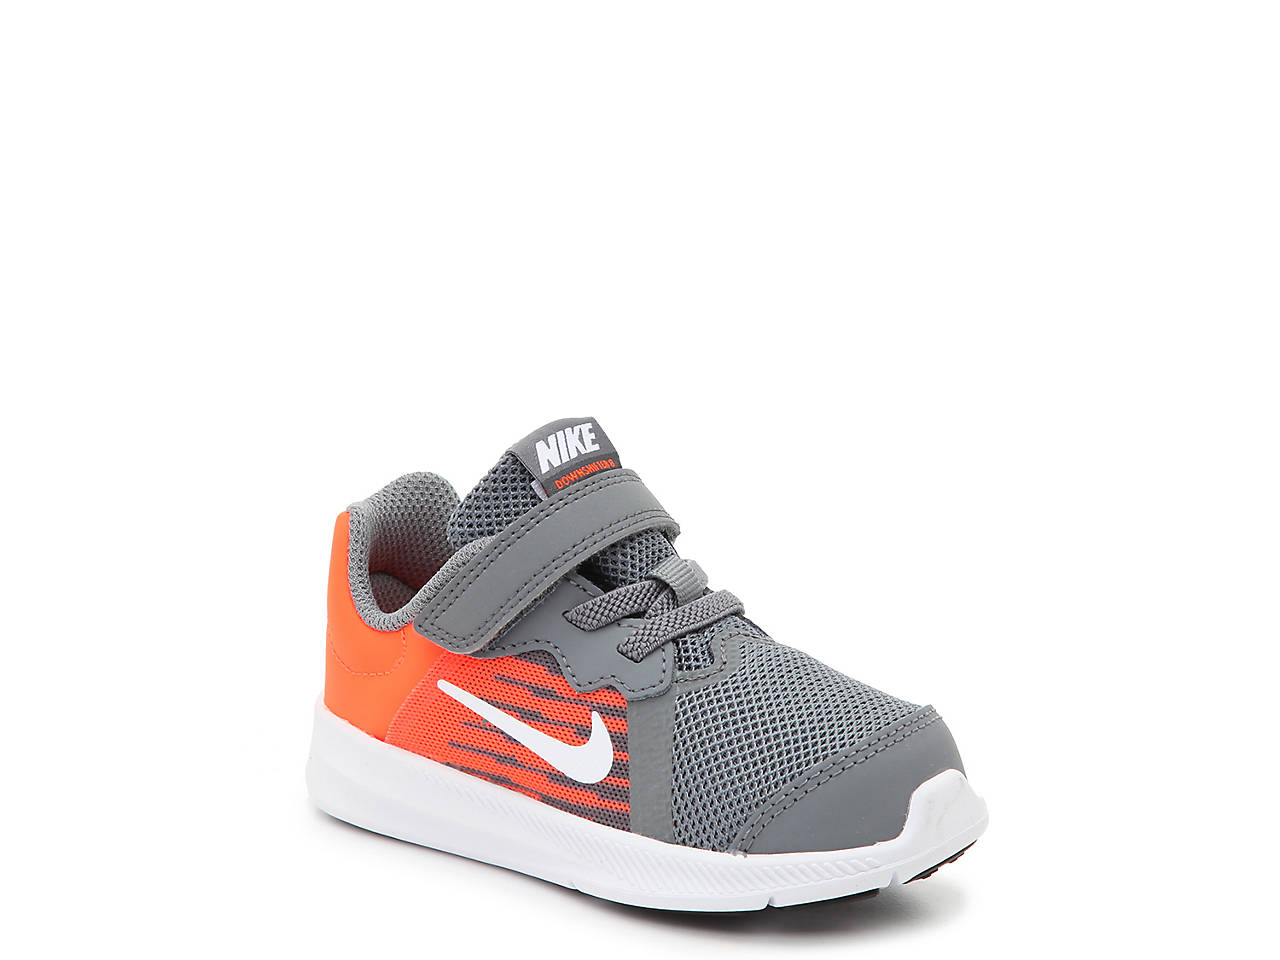 9a289254a0d51 Nike Downshifter 8 Infant   Toddler Sneaker Kids Shoes